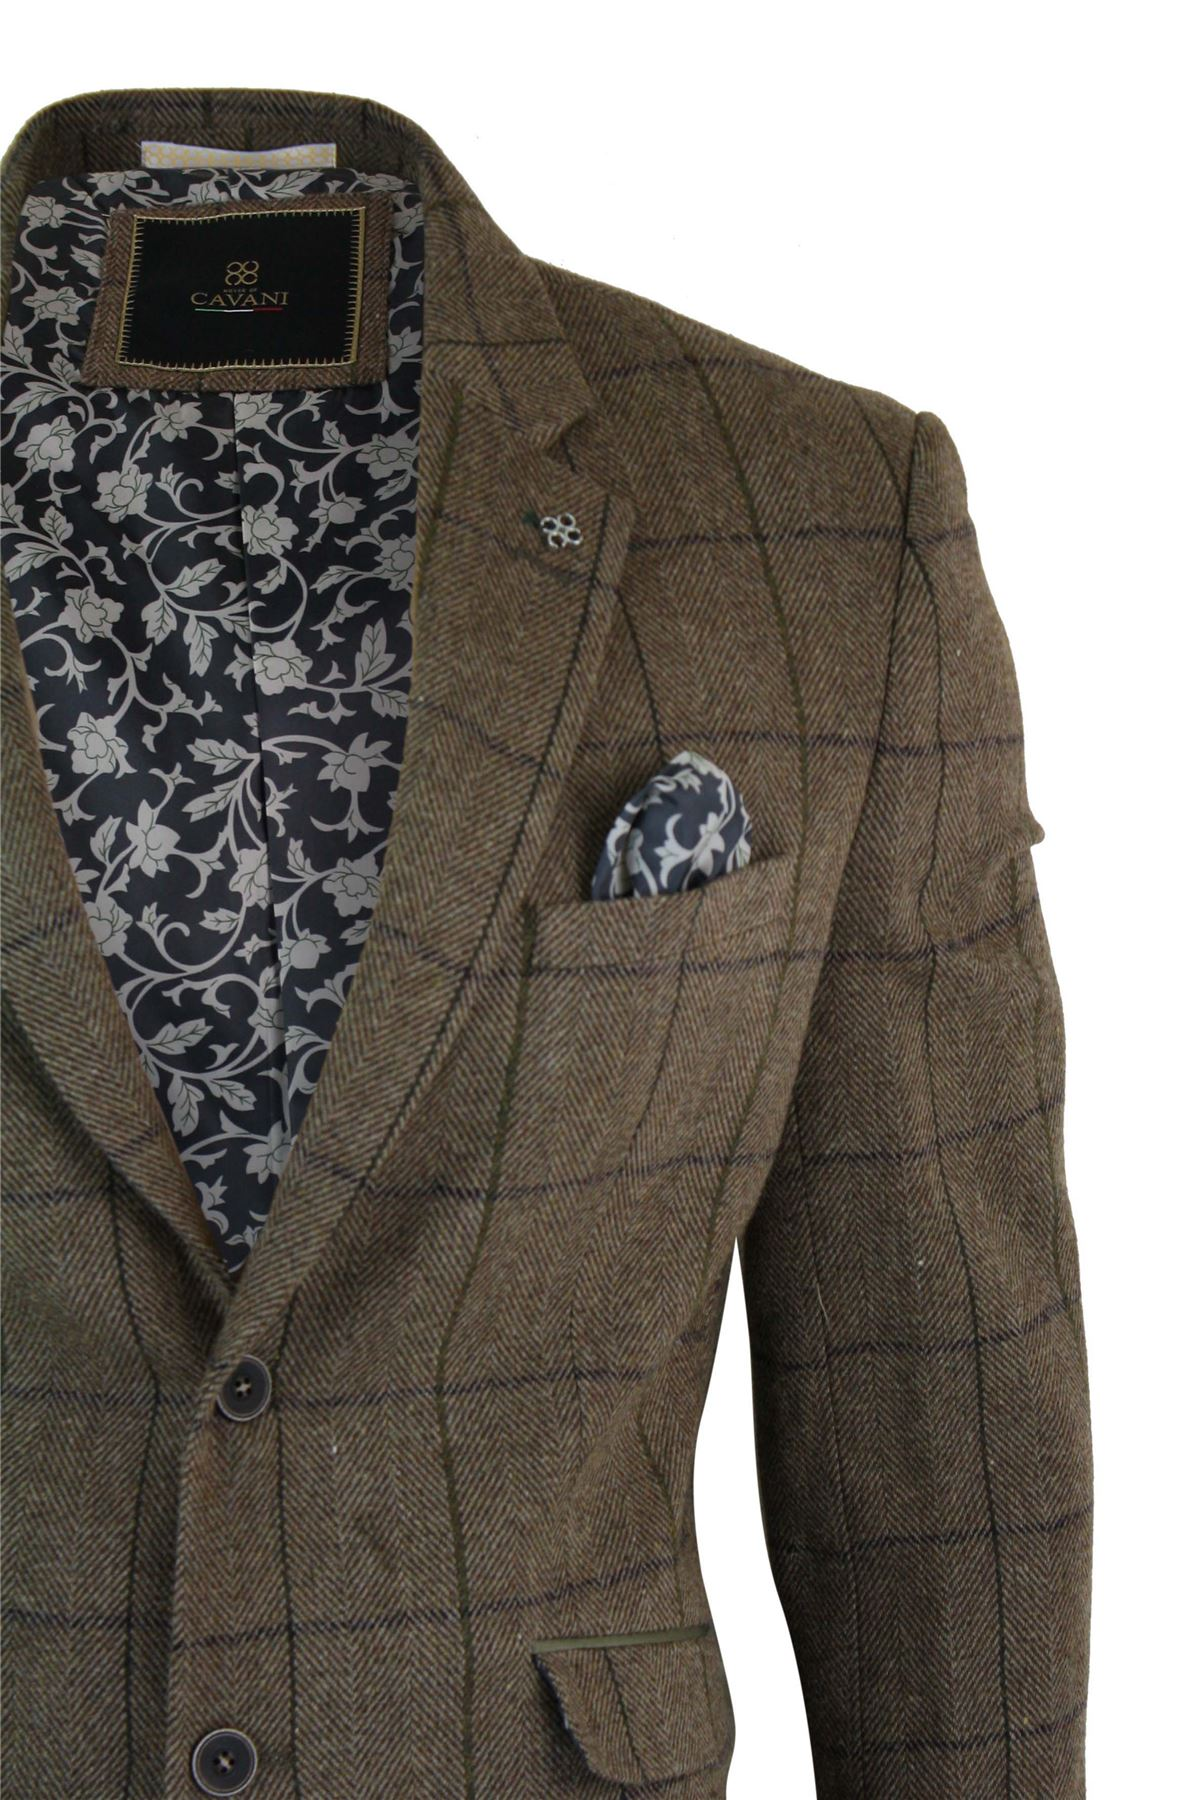 veste homme tweed chevrons marron vintage carreaux bleu marine blazer ebay. Black Bedroom Furniture Sets. Home Design Ideas